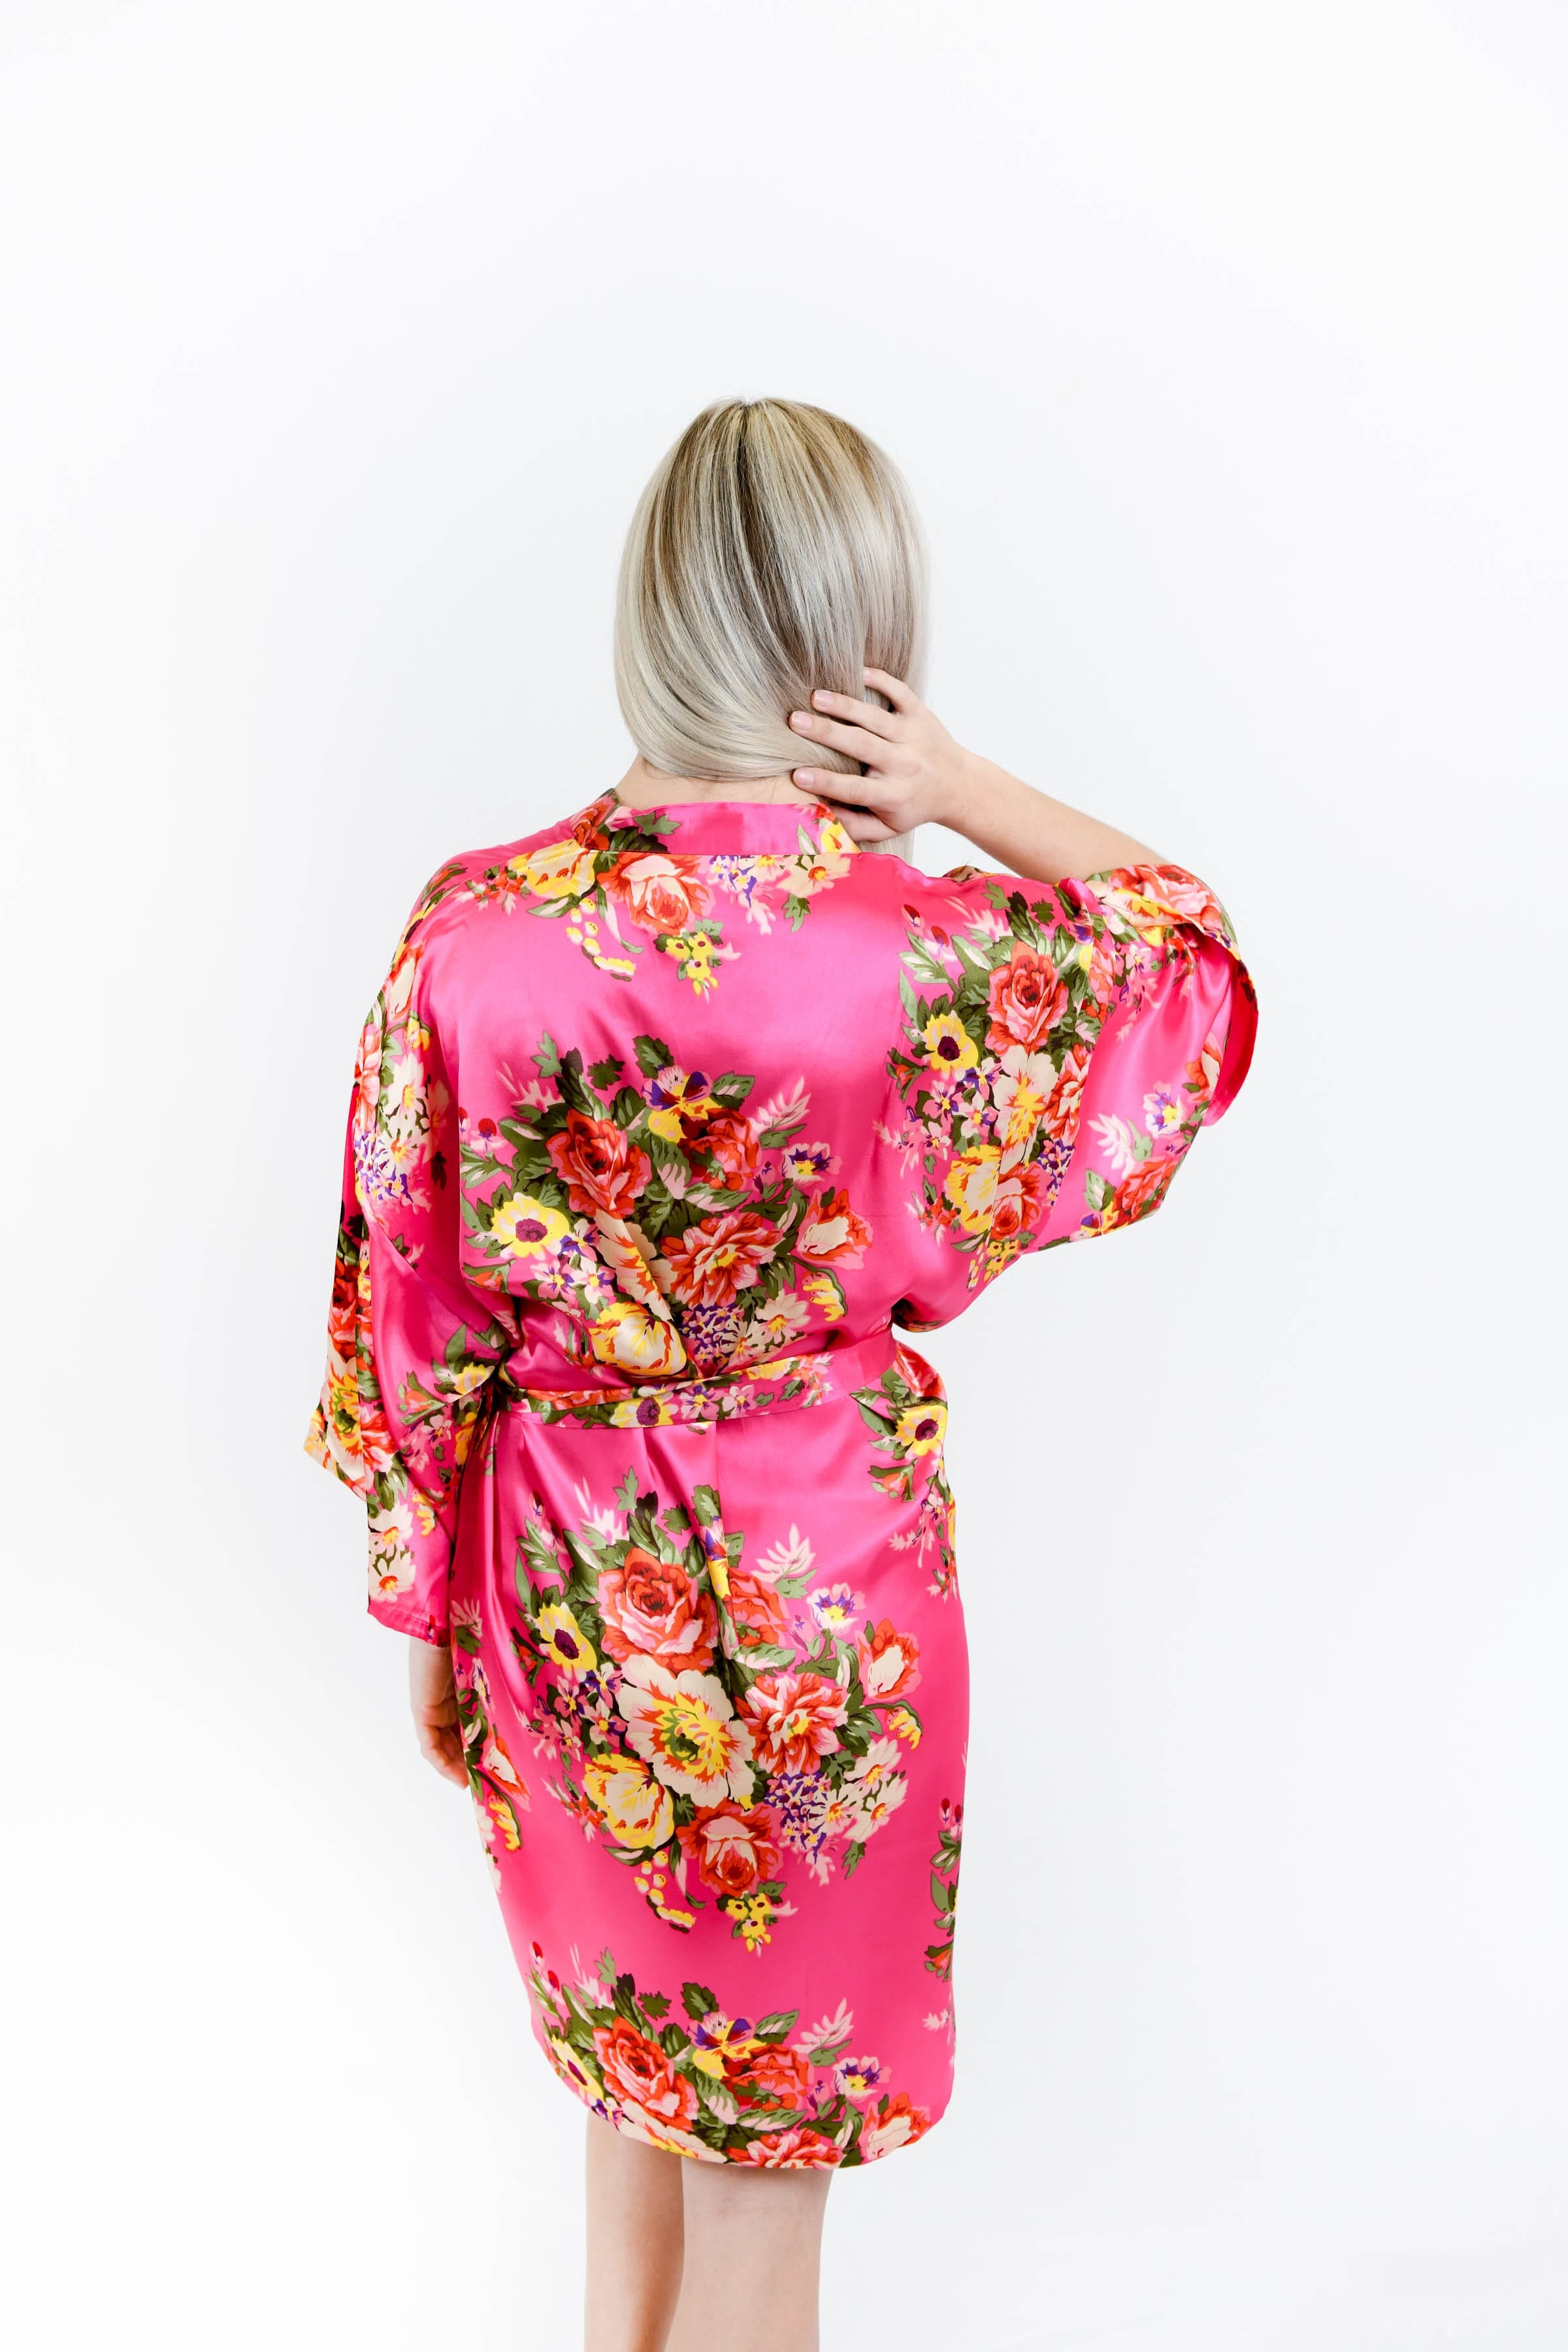 Hot Pink Floral Satin Bridesmaid Robes